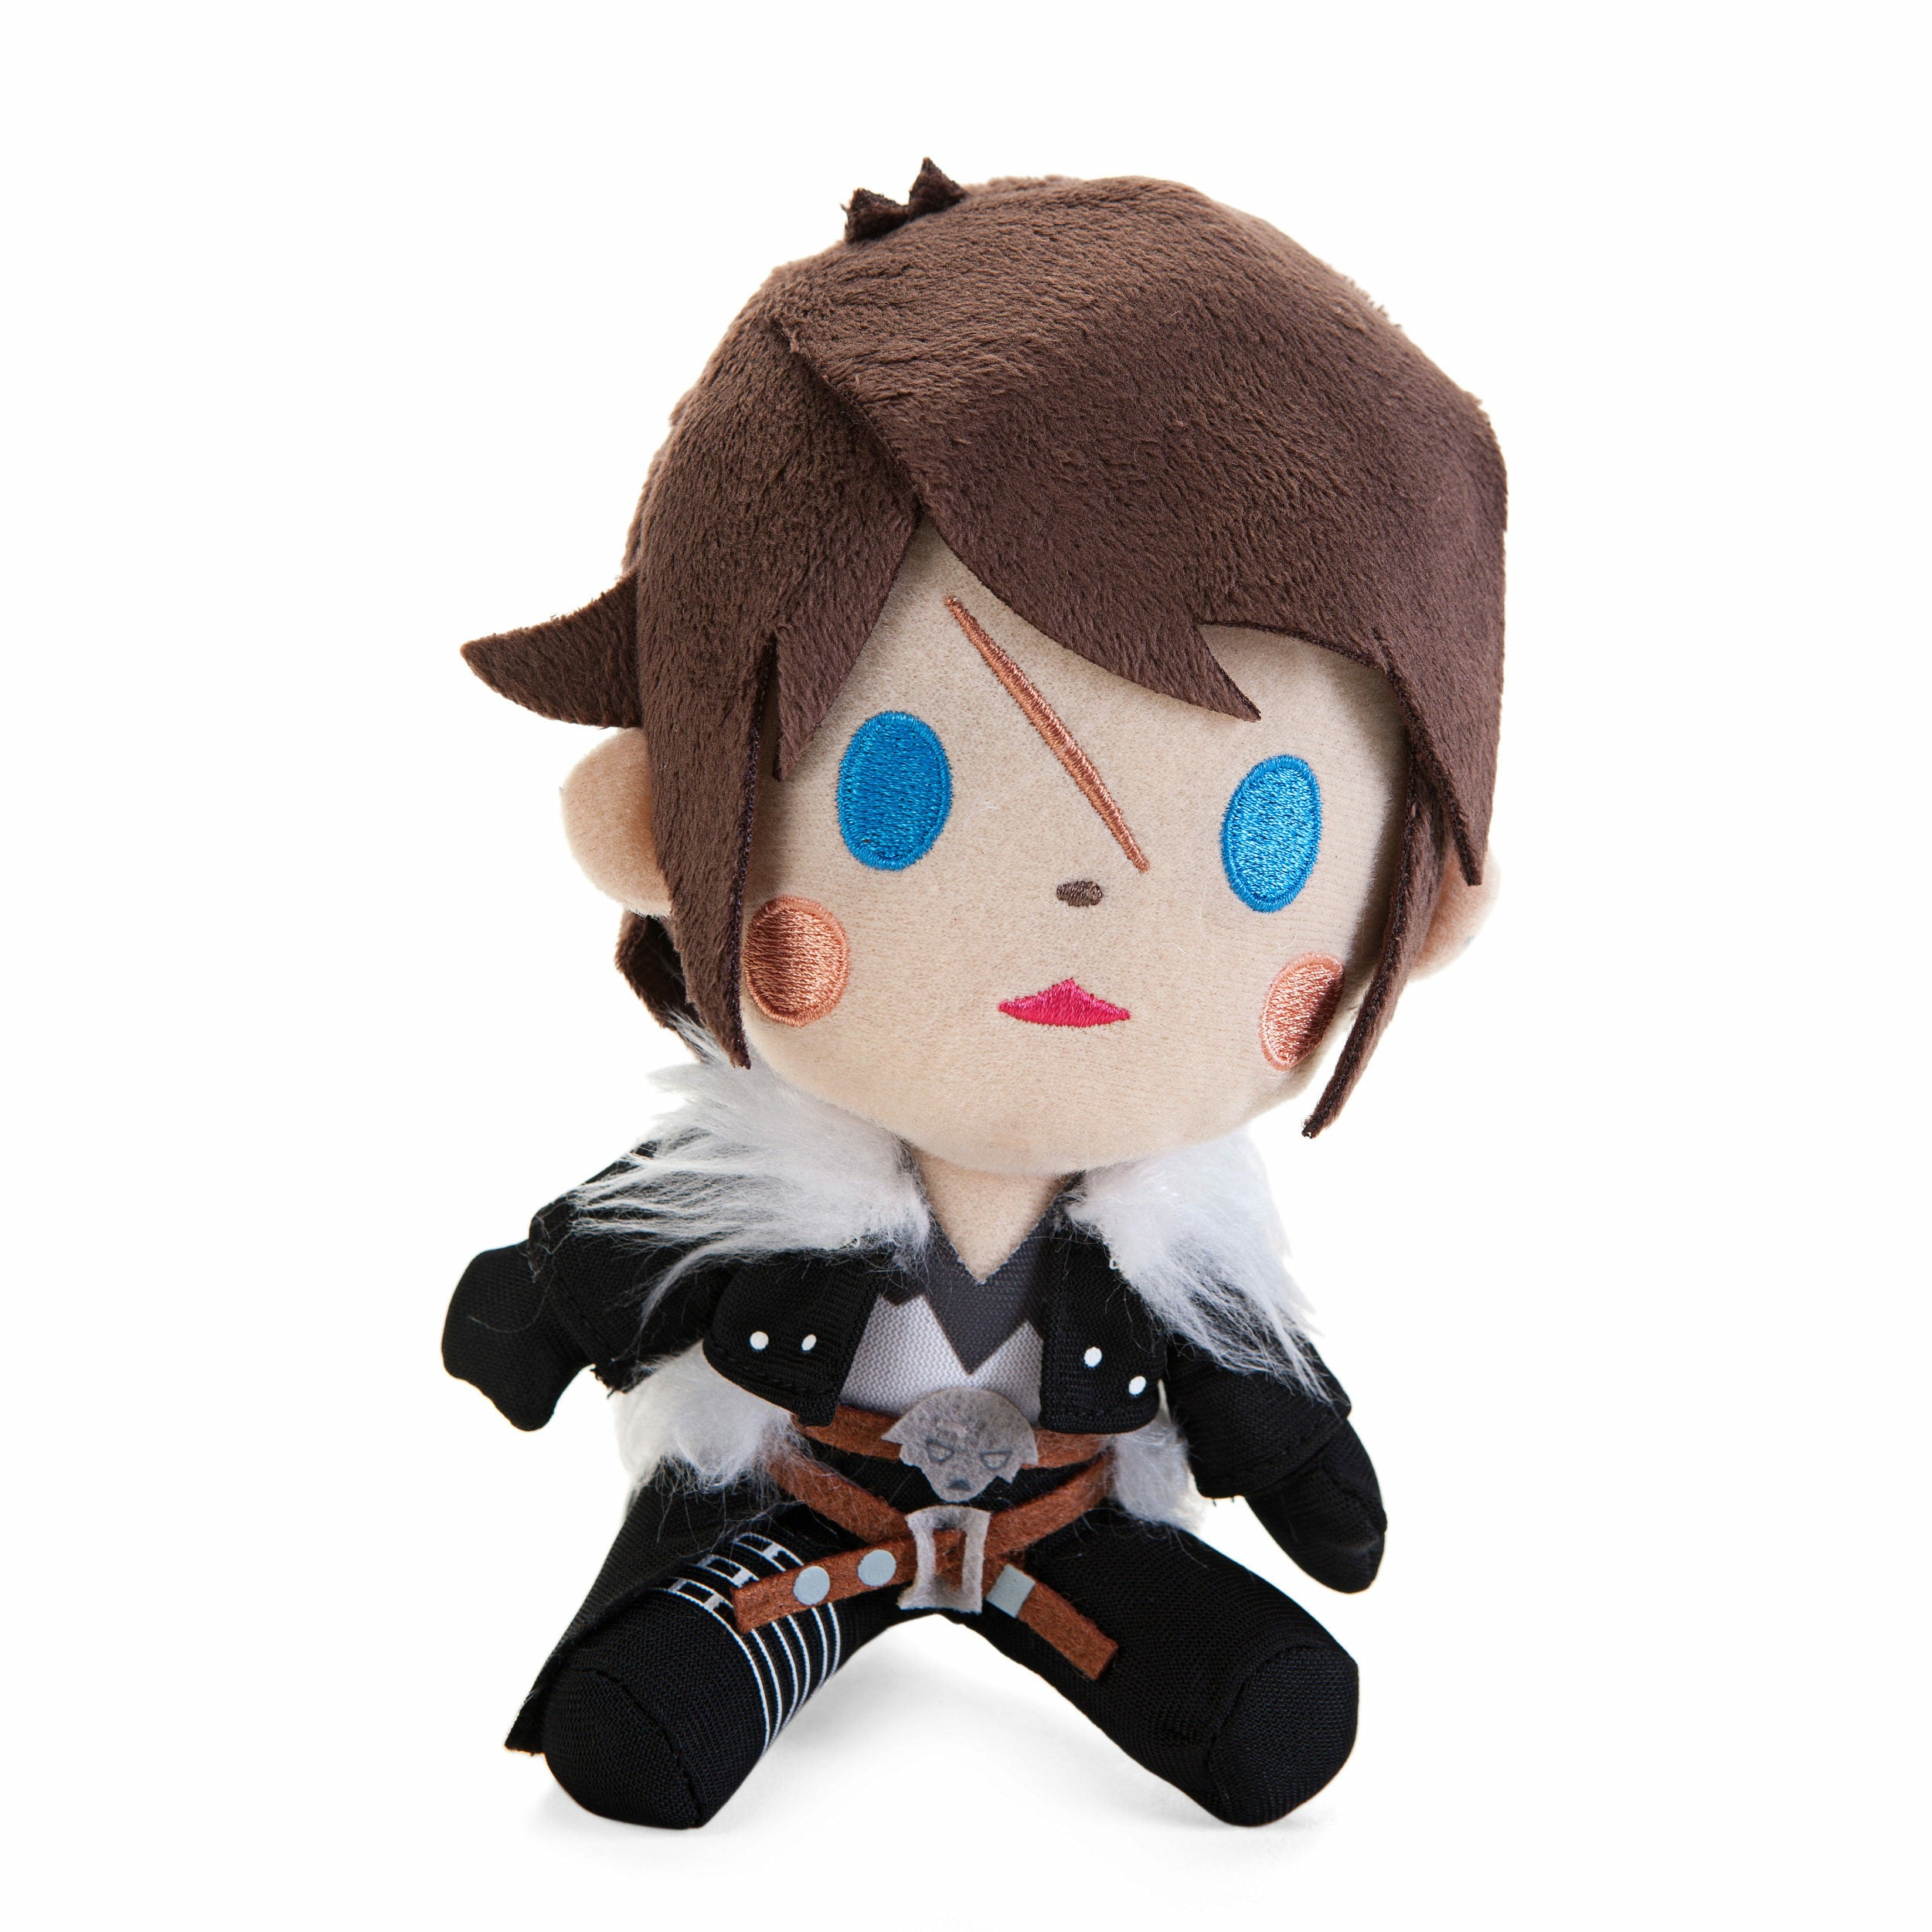 Final Fantasy All Stars Deformed Plush Vol. 3 Squall Leonhart Plush Toy